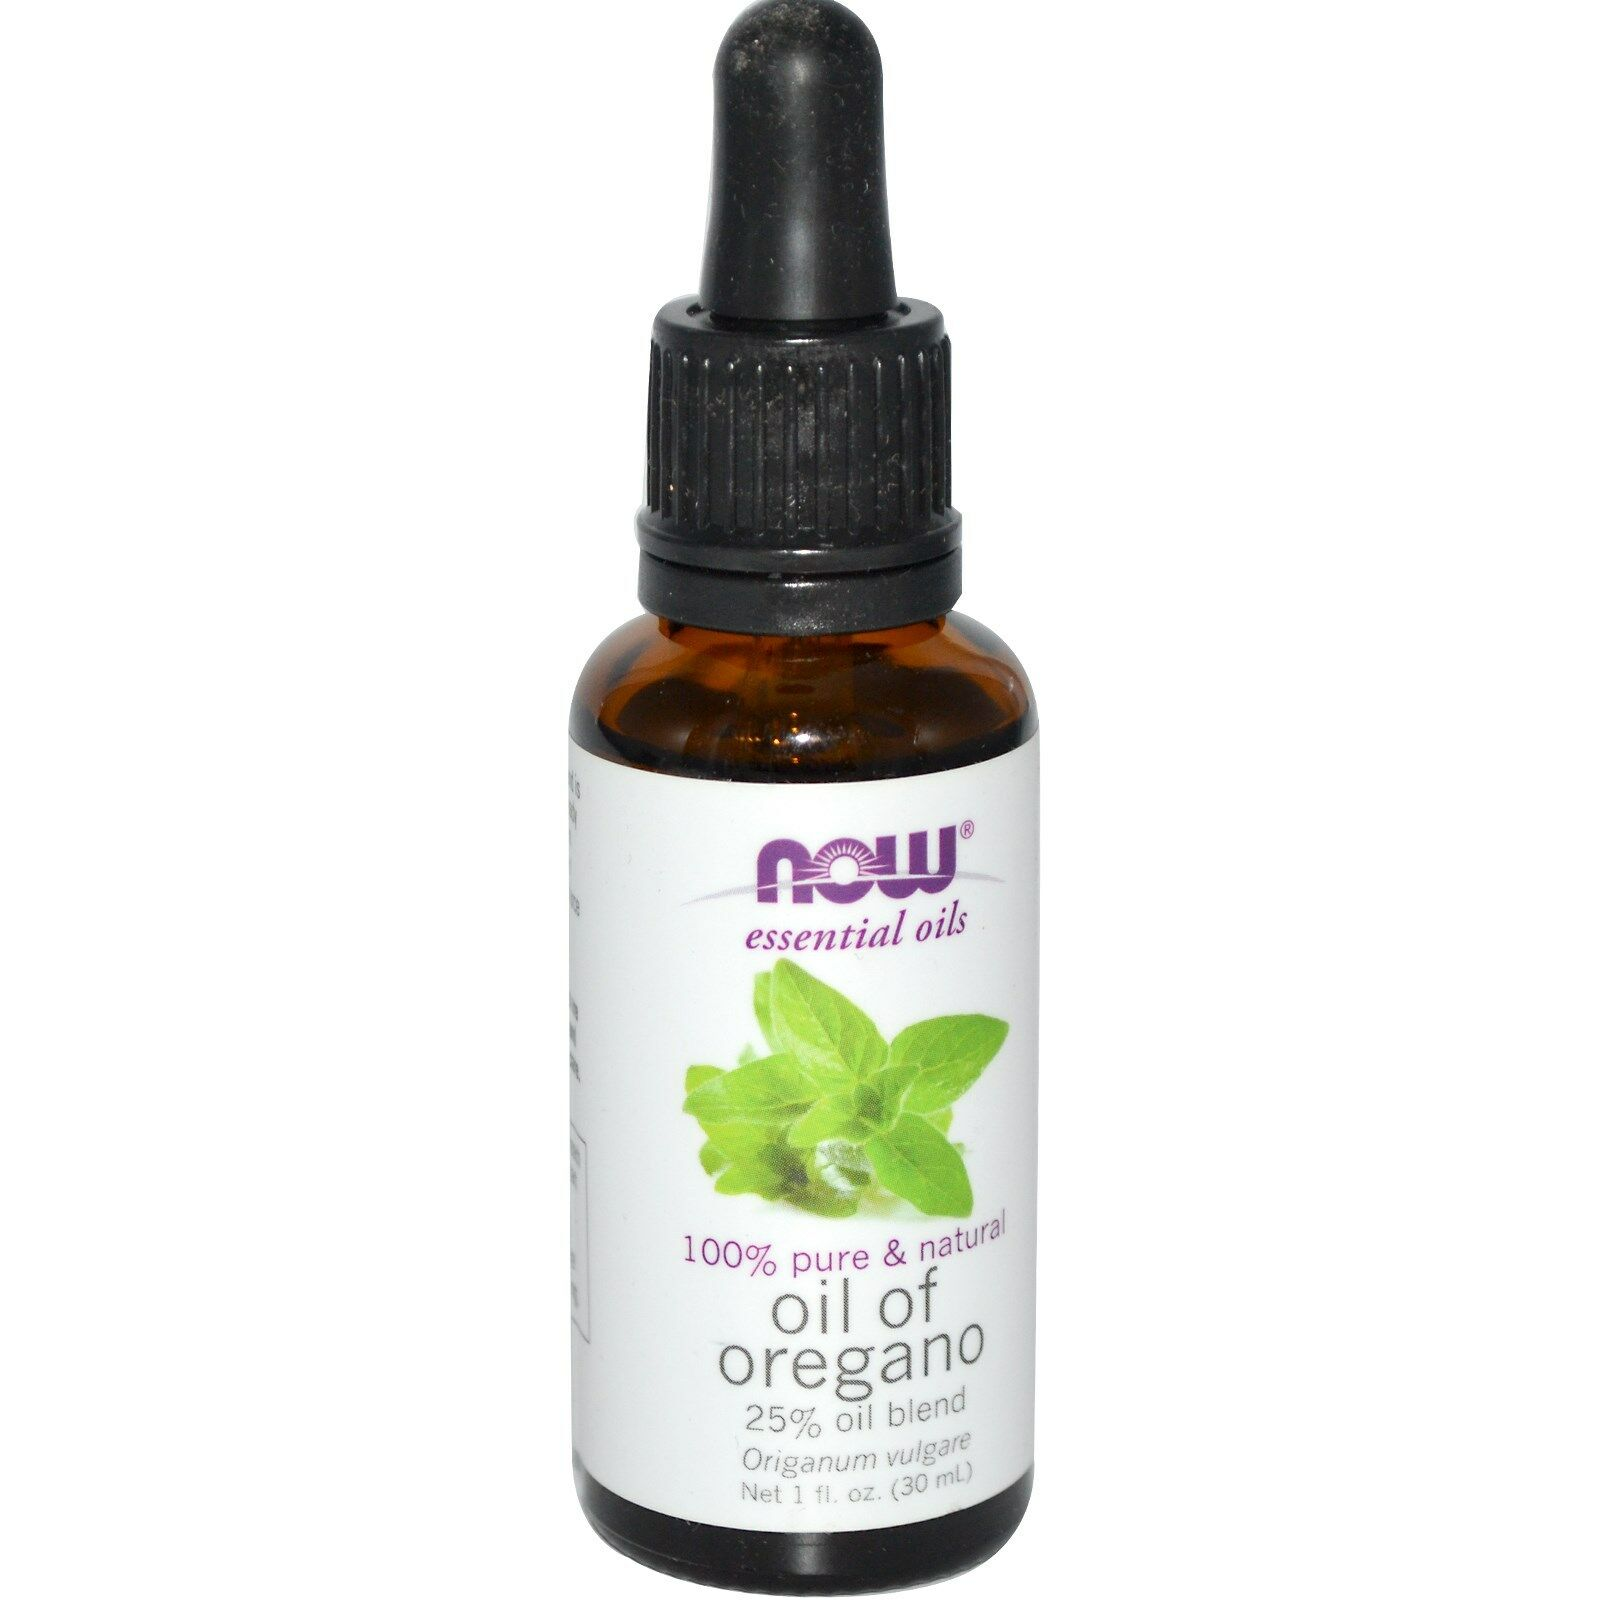 NOW Foods 1 oz Essential Oils and Blend Oils - FREE SHIPPING! Oregano 25% Blend (w/ Dropper)